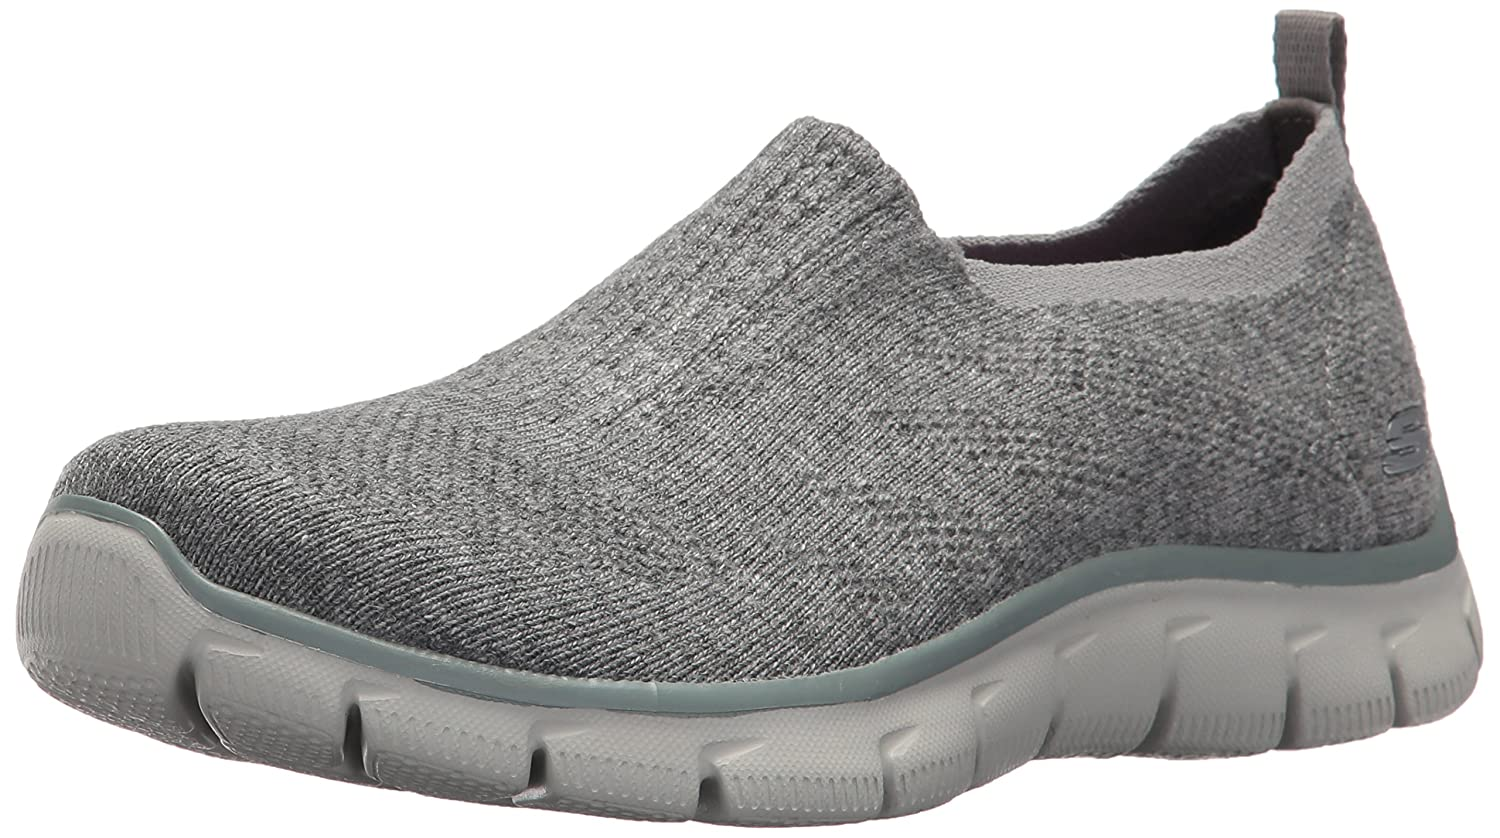 Skechers Women's Empire Clear As Day Sneaker B01N369SBD 6 B(M) US|Grey